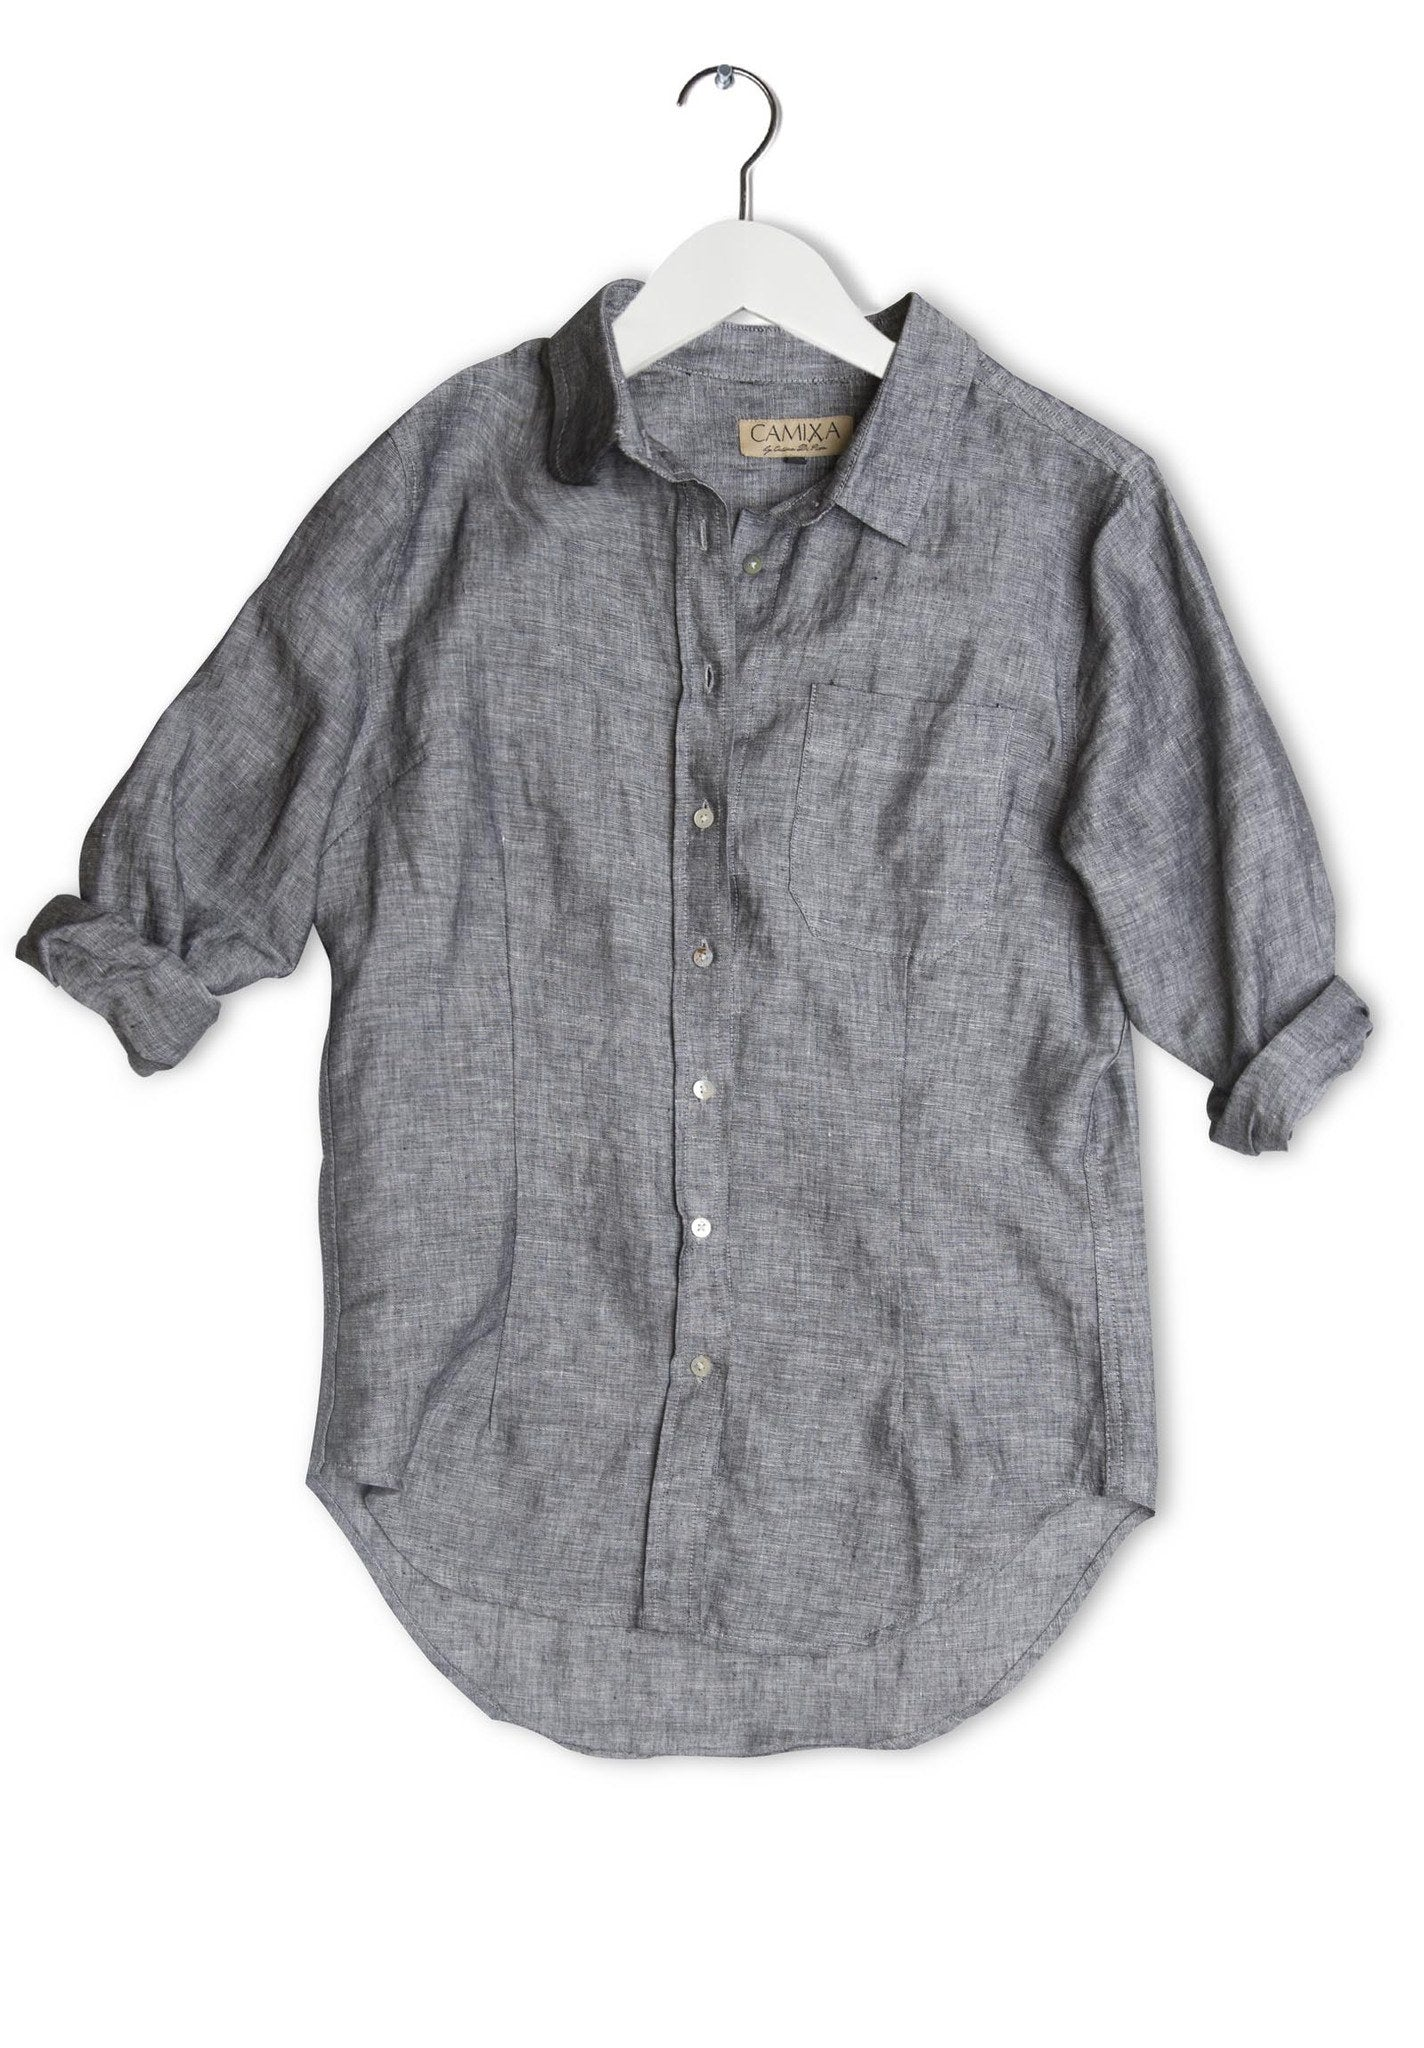 Lina Black Melange, Crushed Linen Shirt